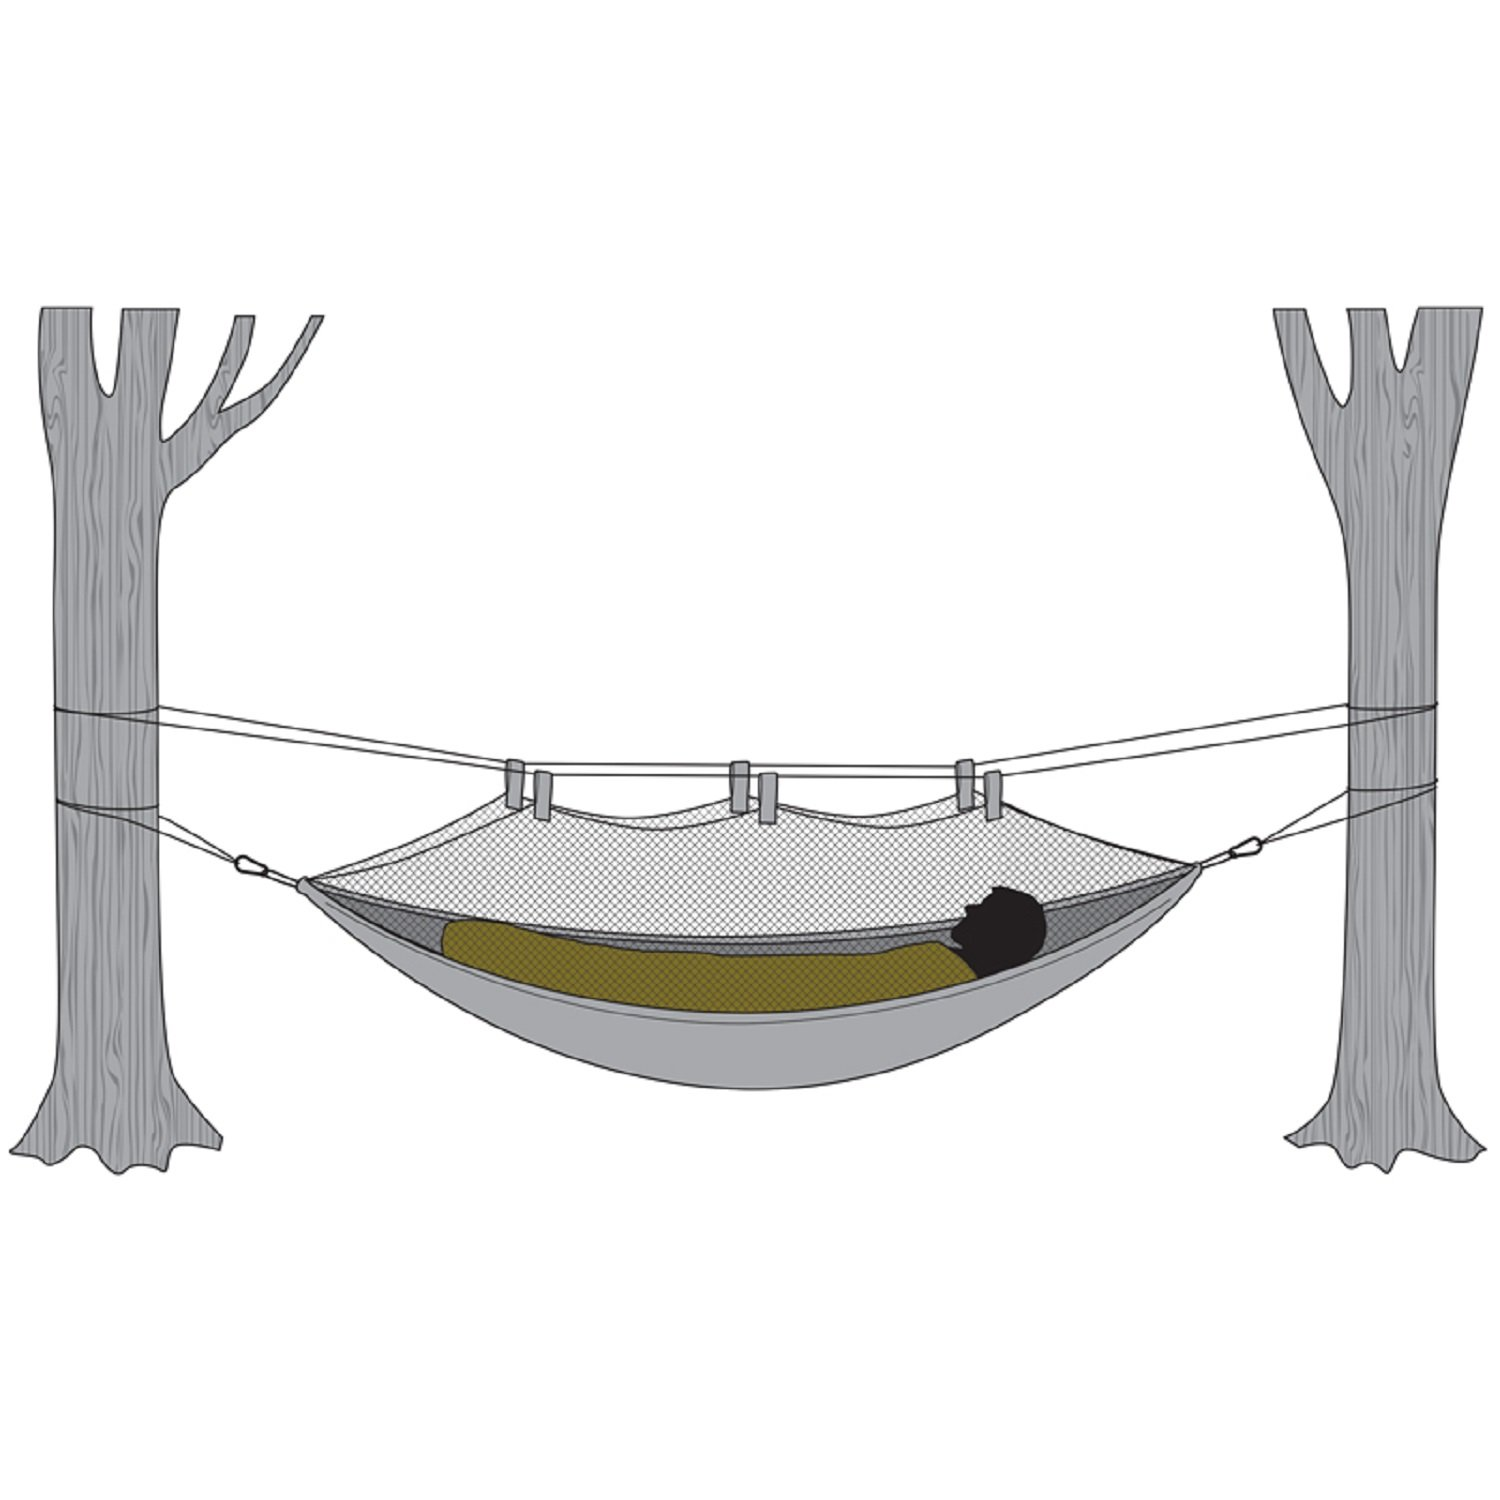 Snugpak Hammock Quilt with Travelsoft Insulation